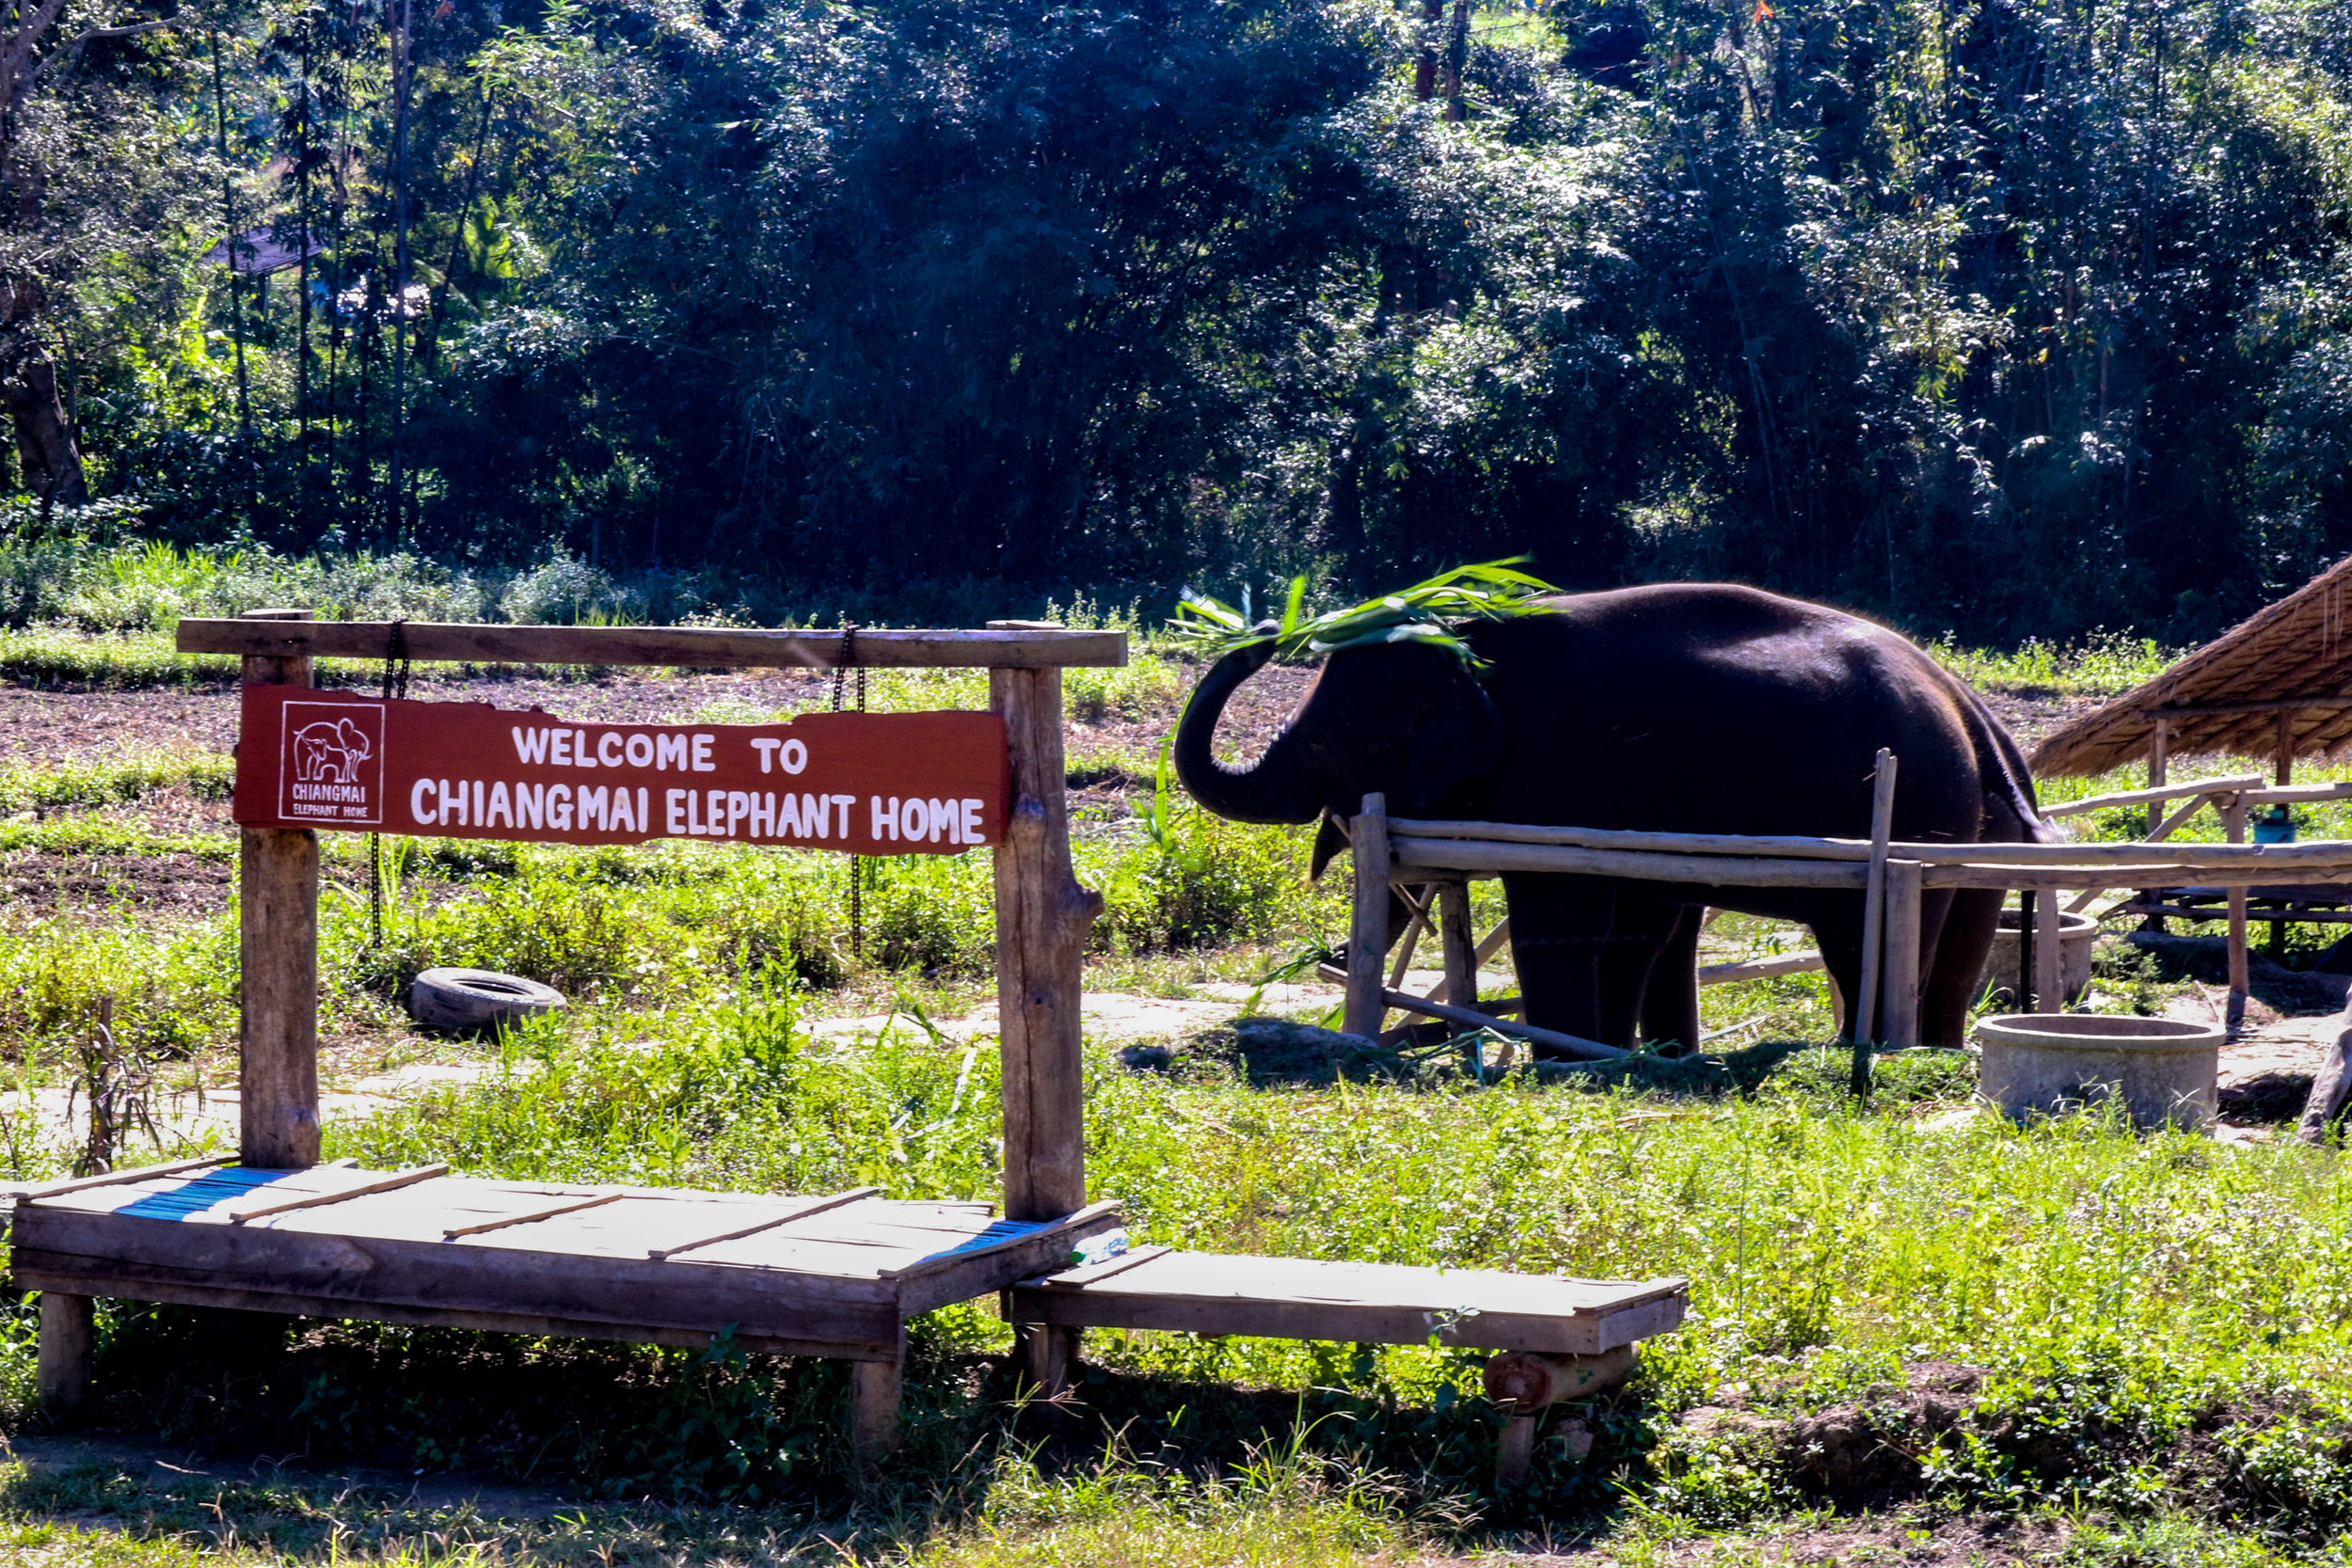 The fence in this photograph looks like an enclosure, but the space is actually open in the opposite direction to the photograph and the elephants are free to roam that way.